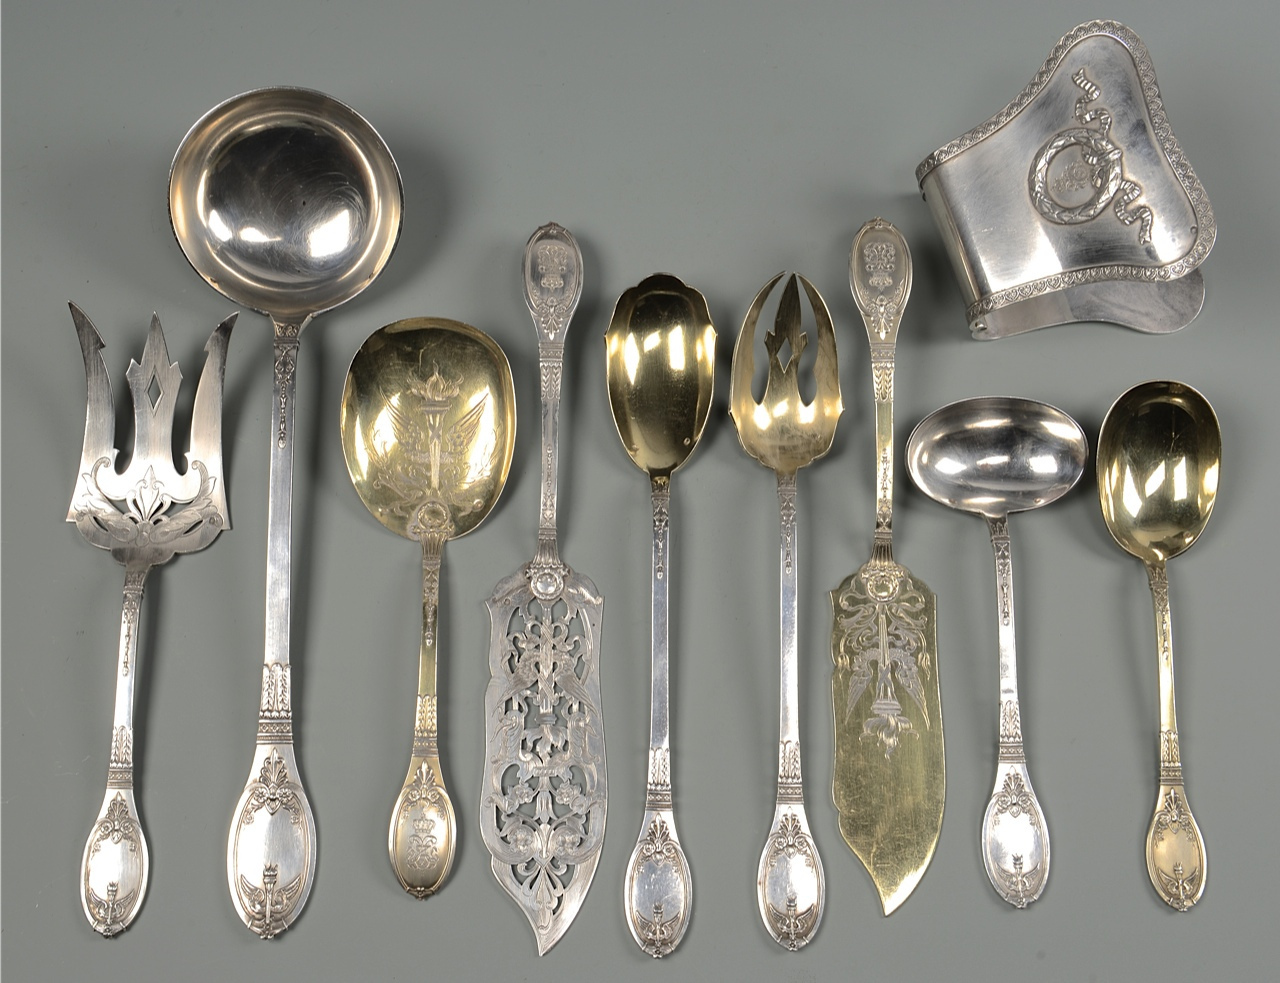 Lot 41: 148 pcs French Silver Flatware with crests